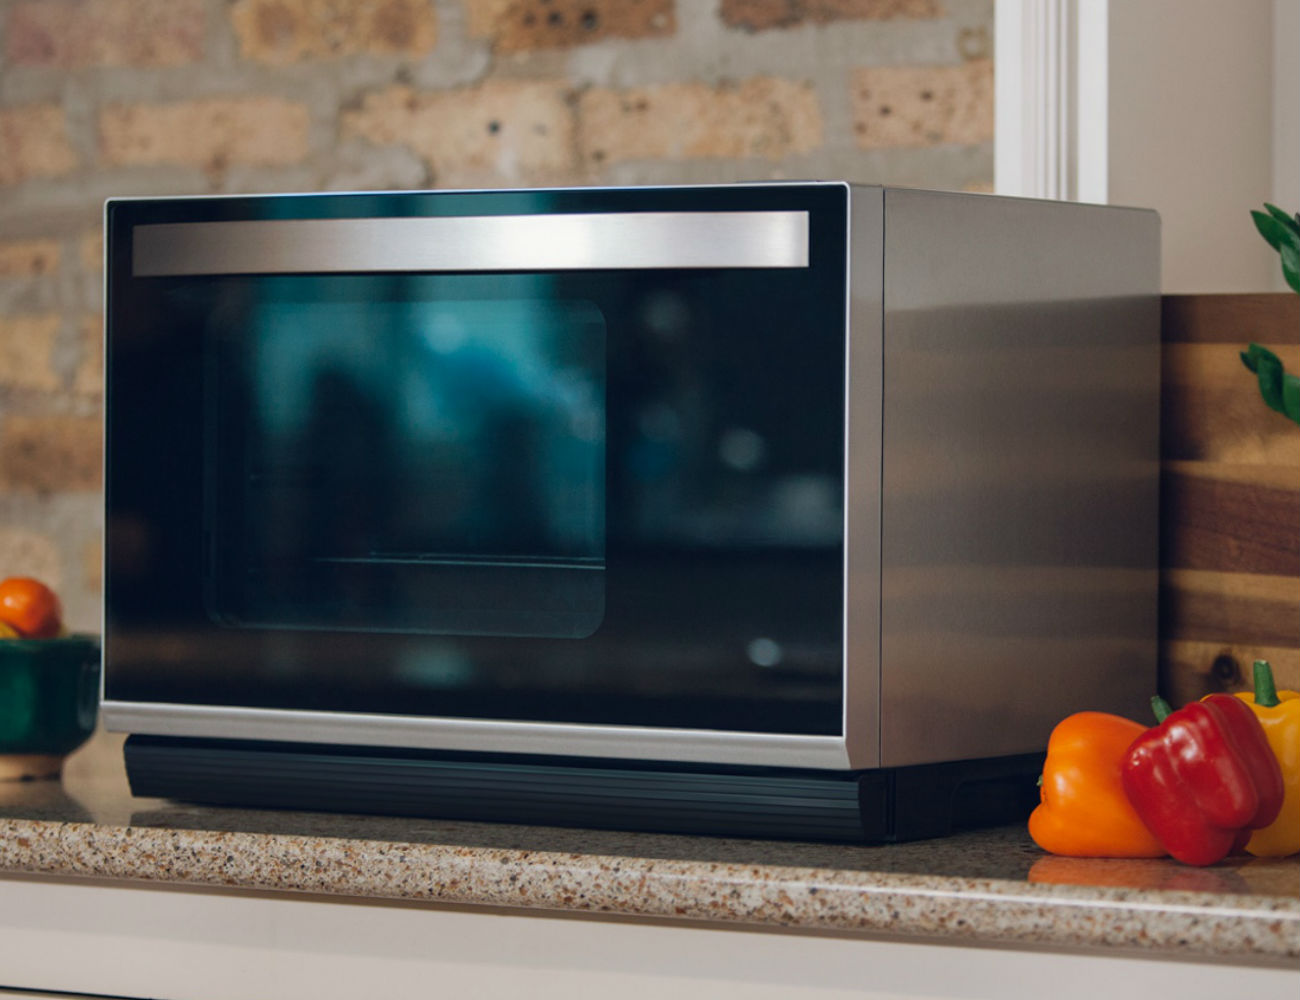 Tovala+Smart+Oven+And+Meal+Delivery+Service